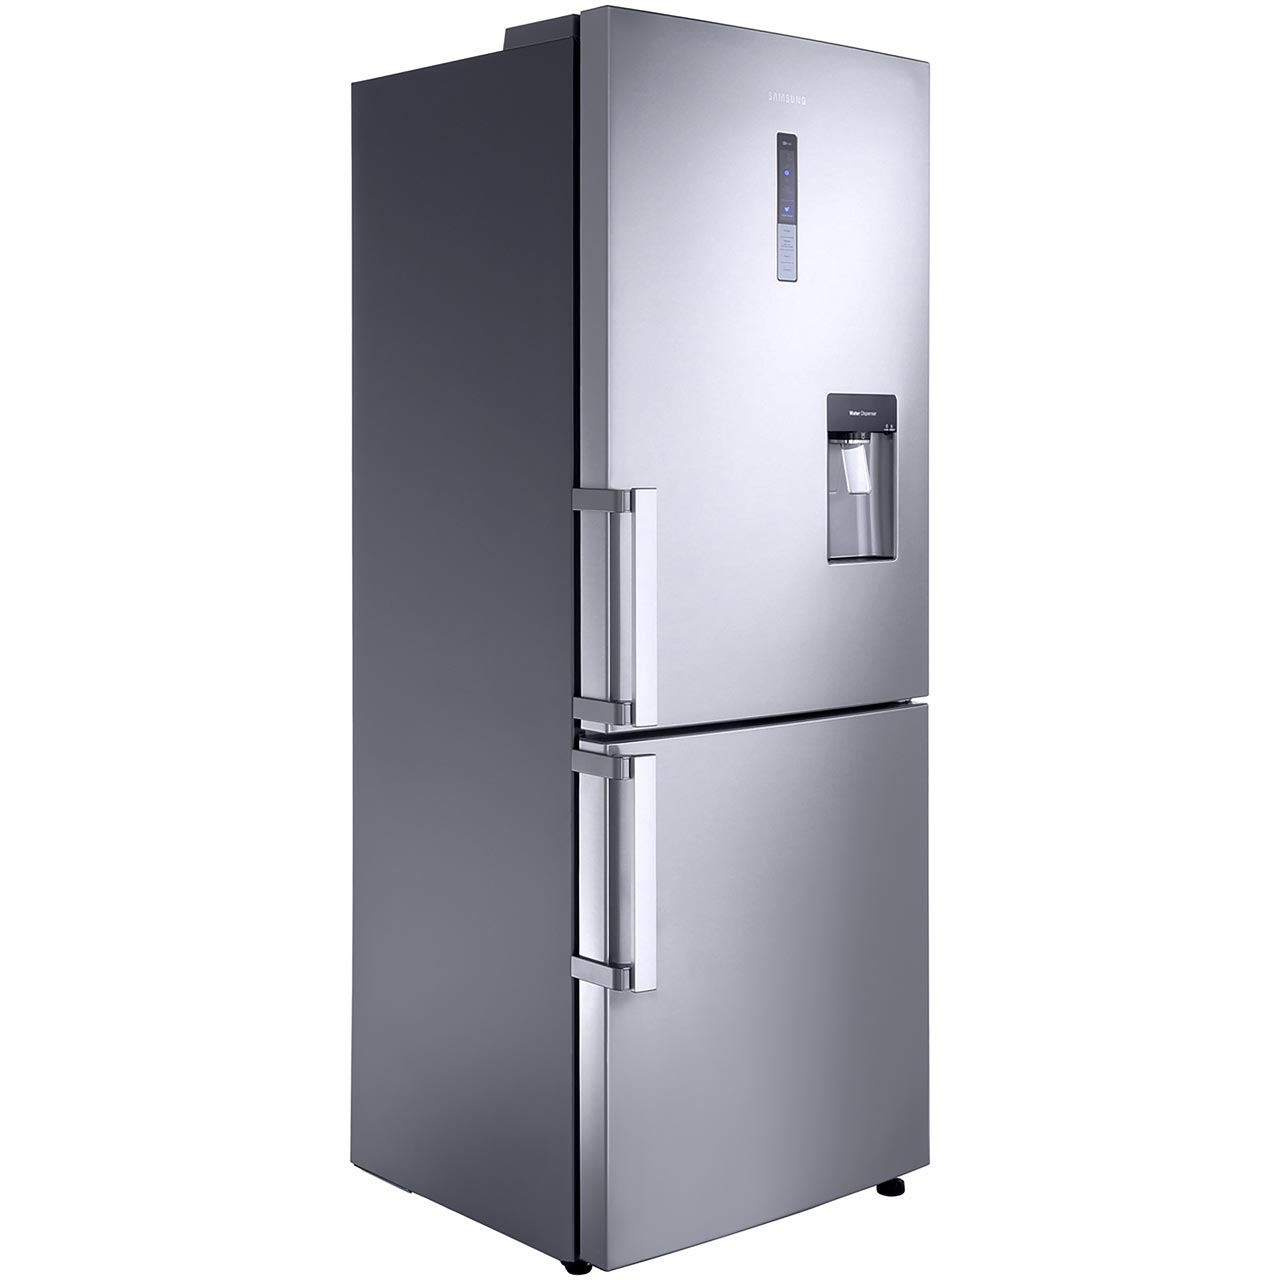 Online Fridge Best Samsung Fridge Freezer Prices In Fridge Freezers Online